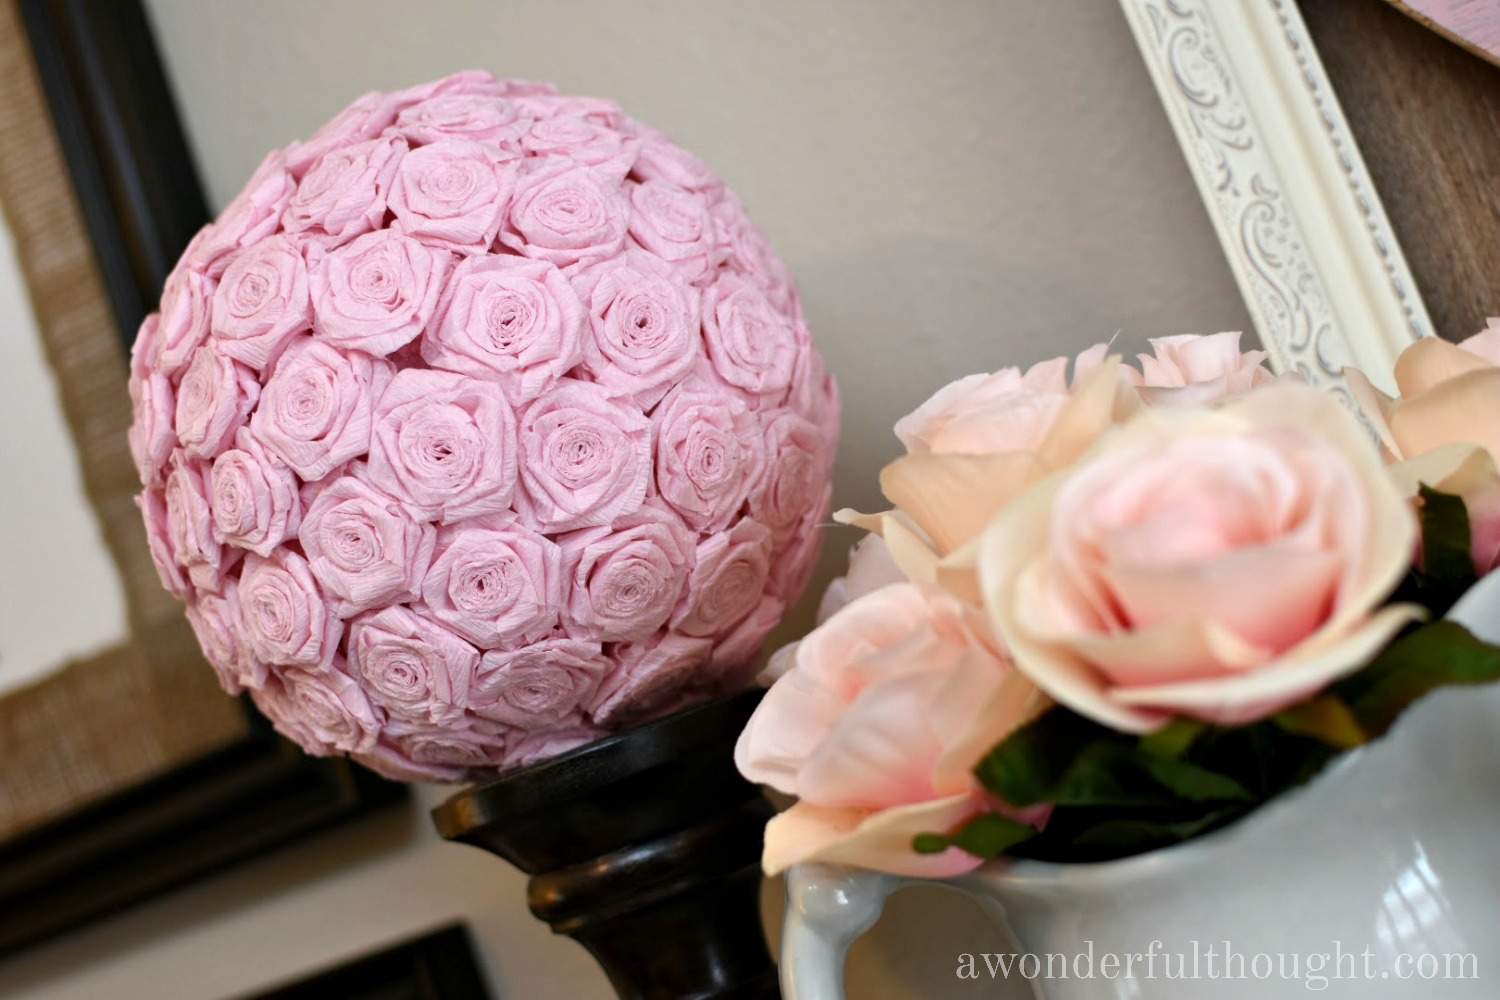 DIY Crepe Paper Flower Kissing Ball | awonderfulthought.com